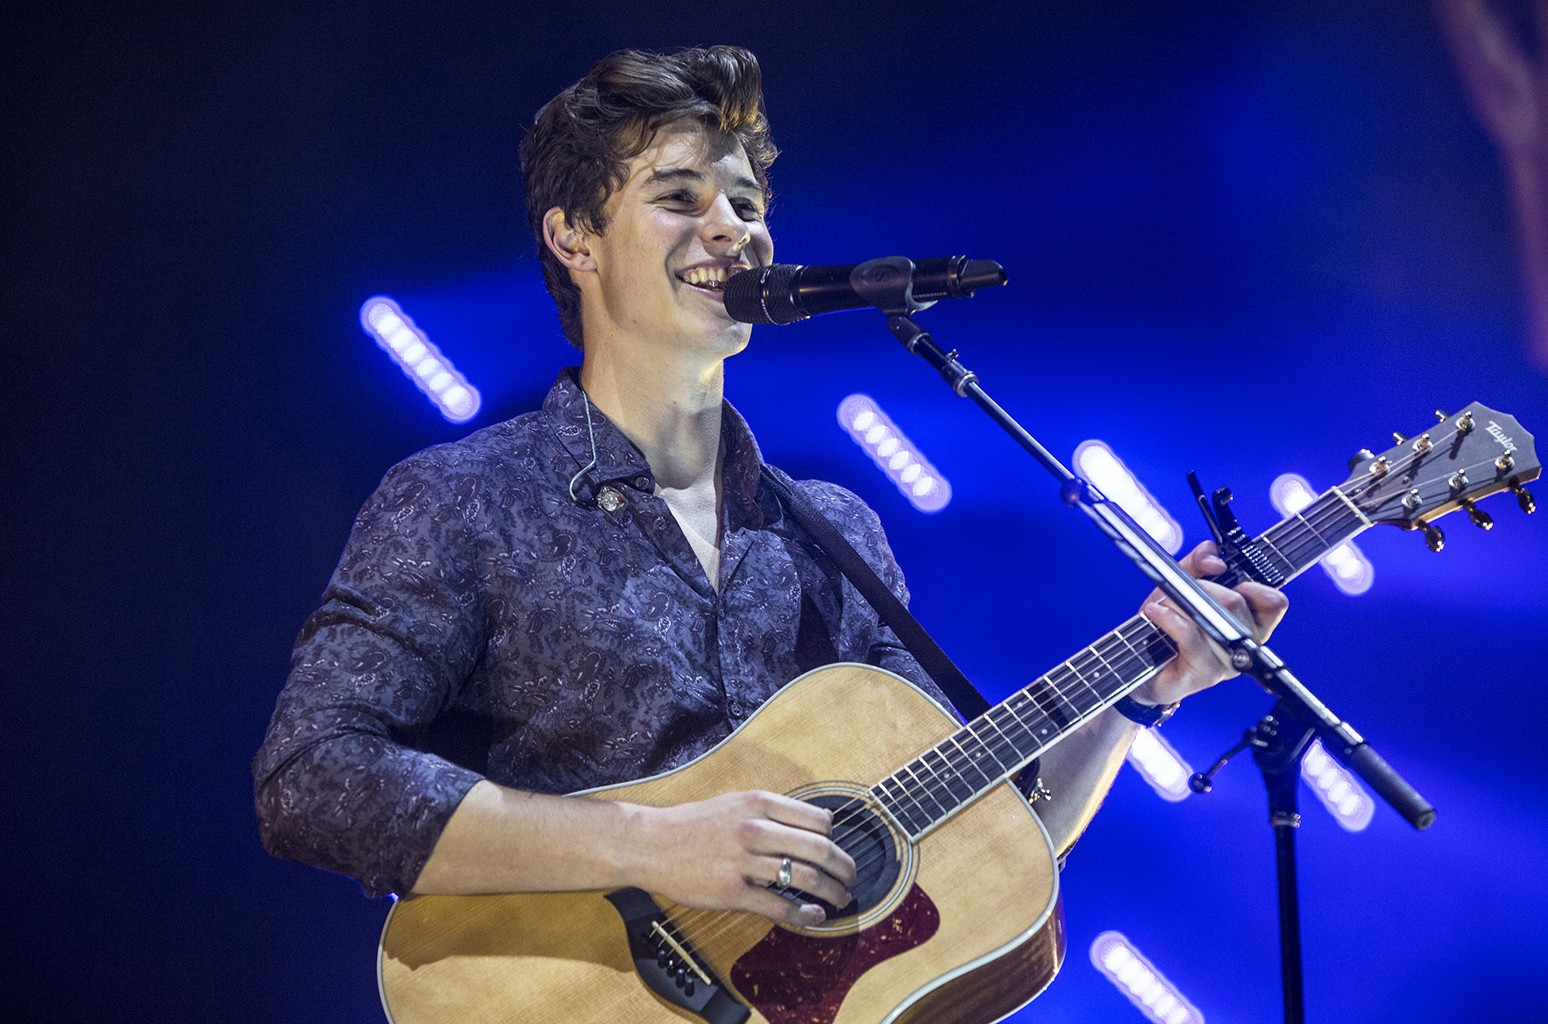 Shawn Mendes performs at Staples Center on July 12, 2017 in Los Angeles.